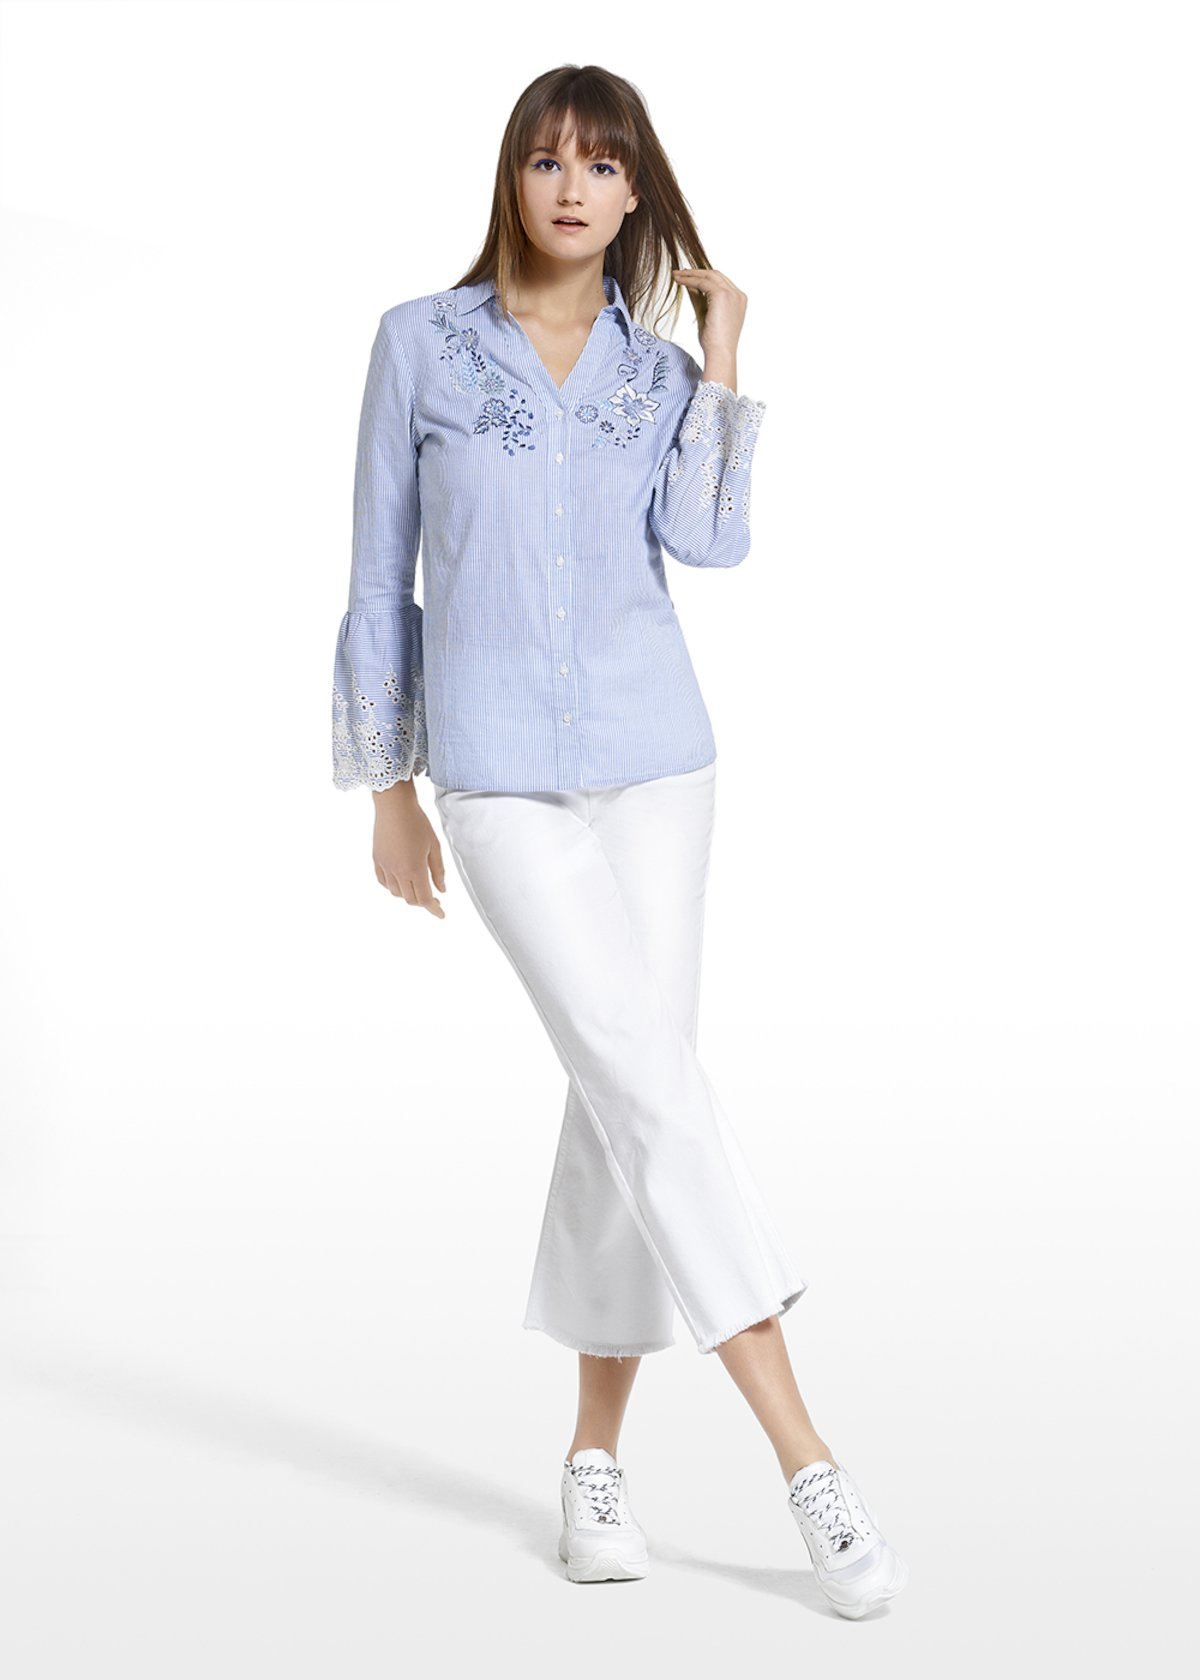 Colby blouse with flower embroidery at the neckline - Blue / White Stripes - Woman - Category image